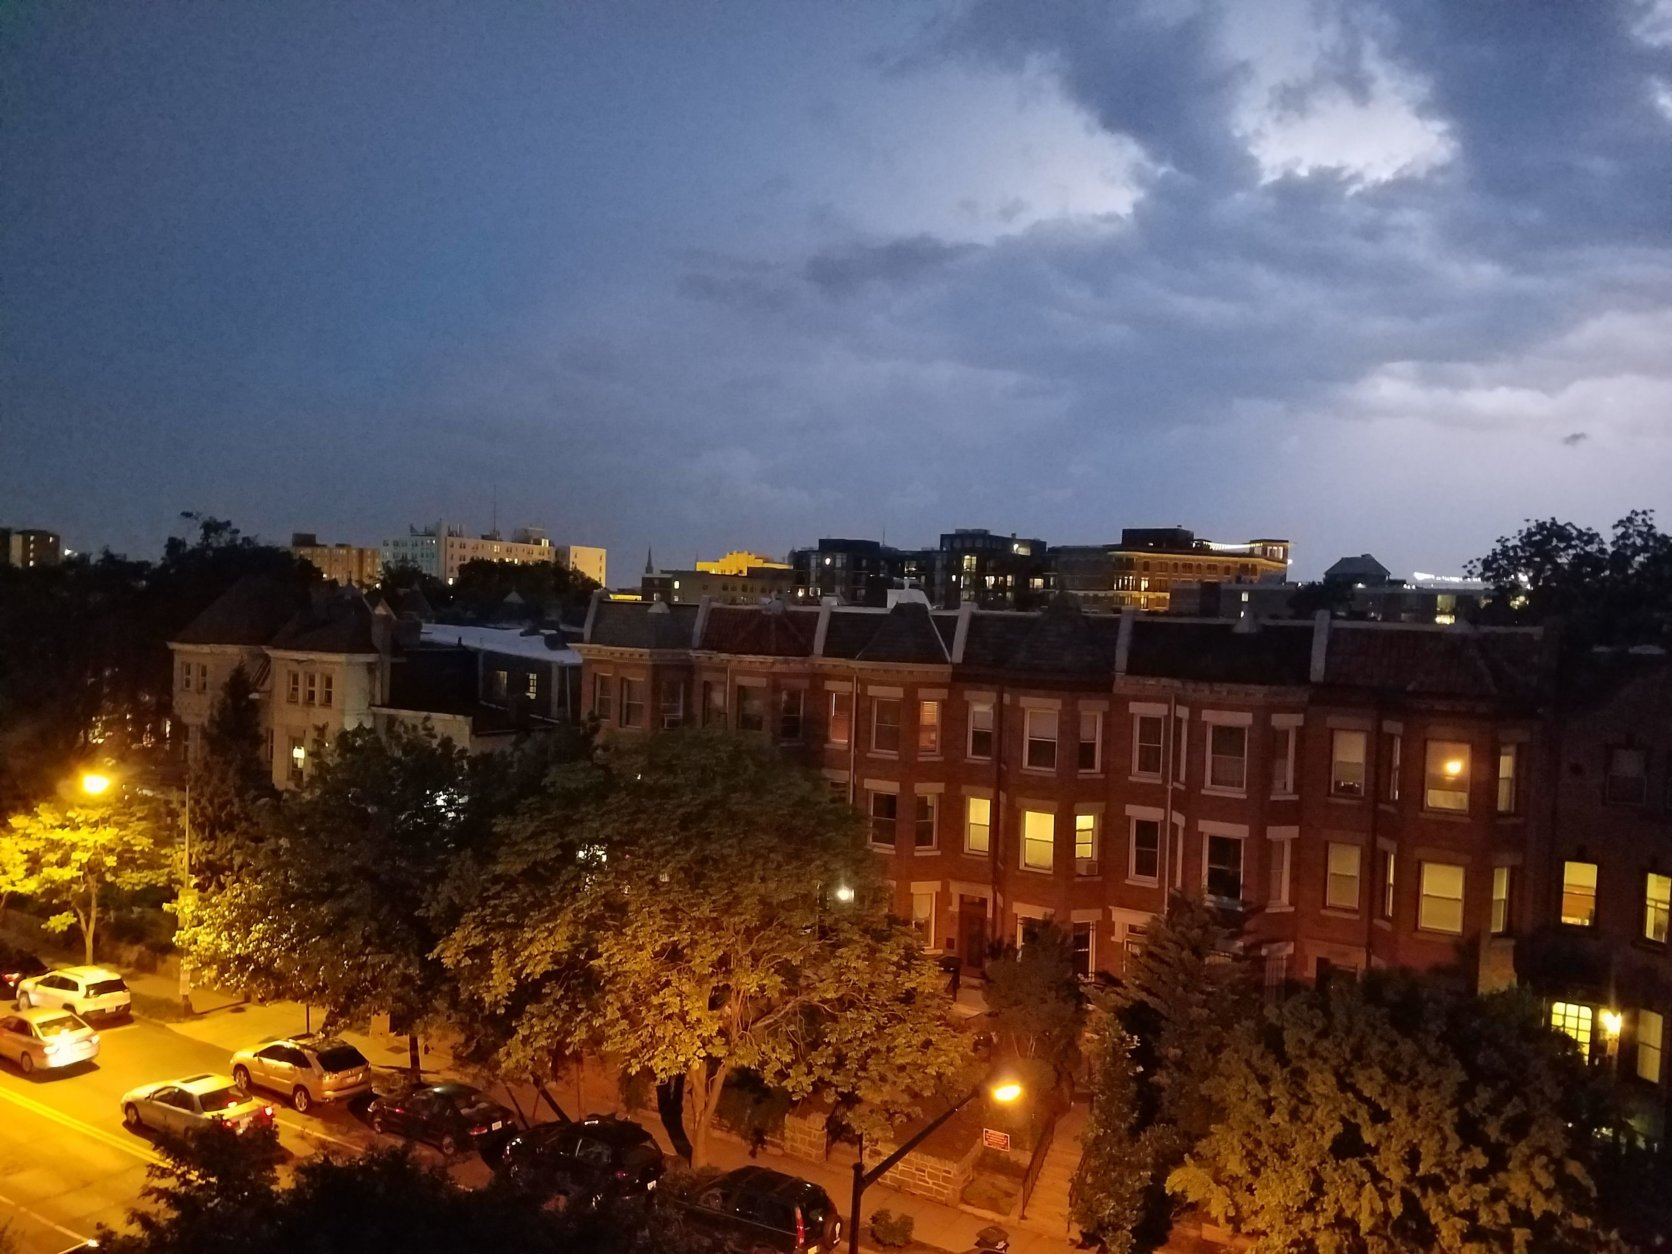 Thunder and lightning over Columbia Heights in the District. (WTOP/Will Vitka)